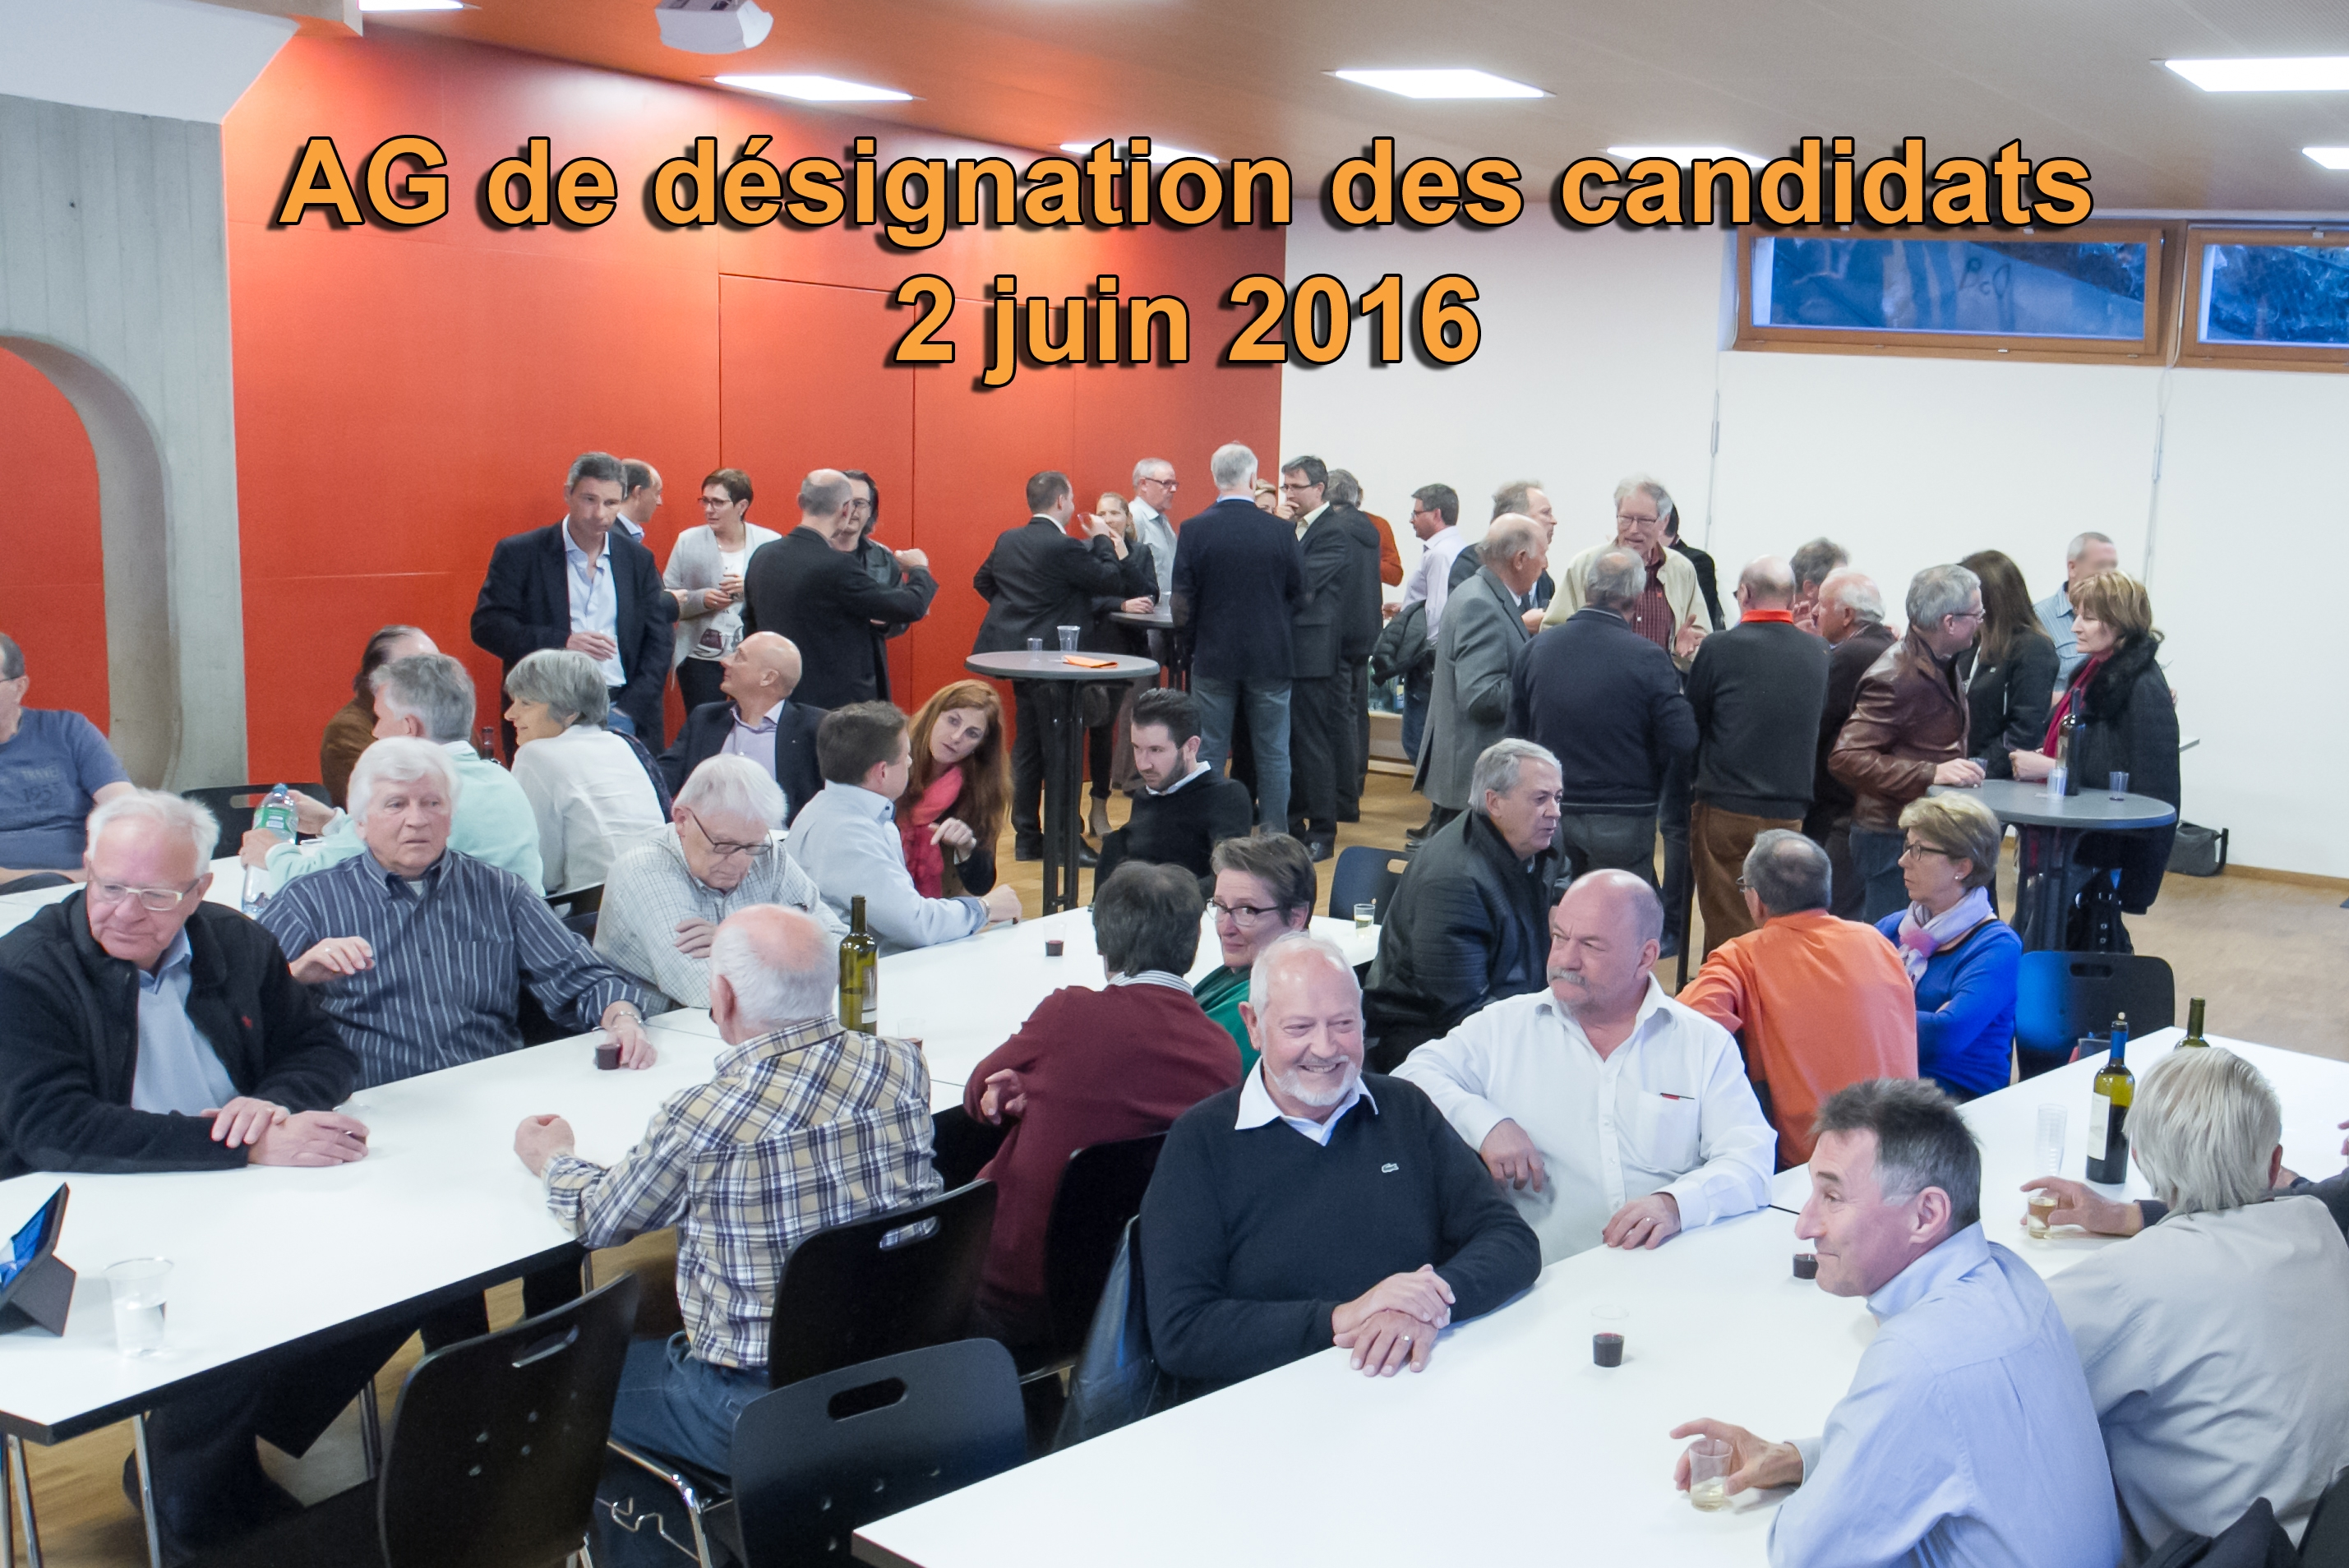 2 juin 2016 save the date